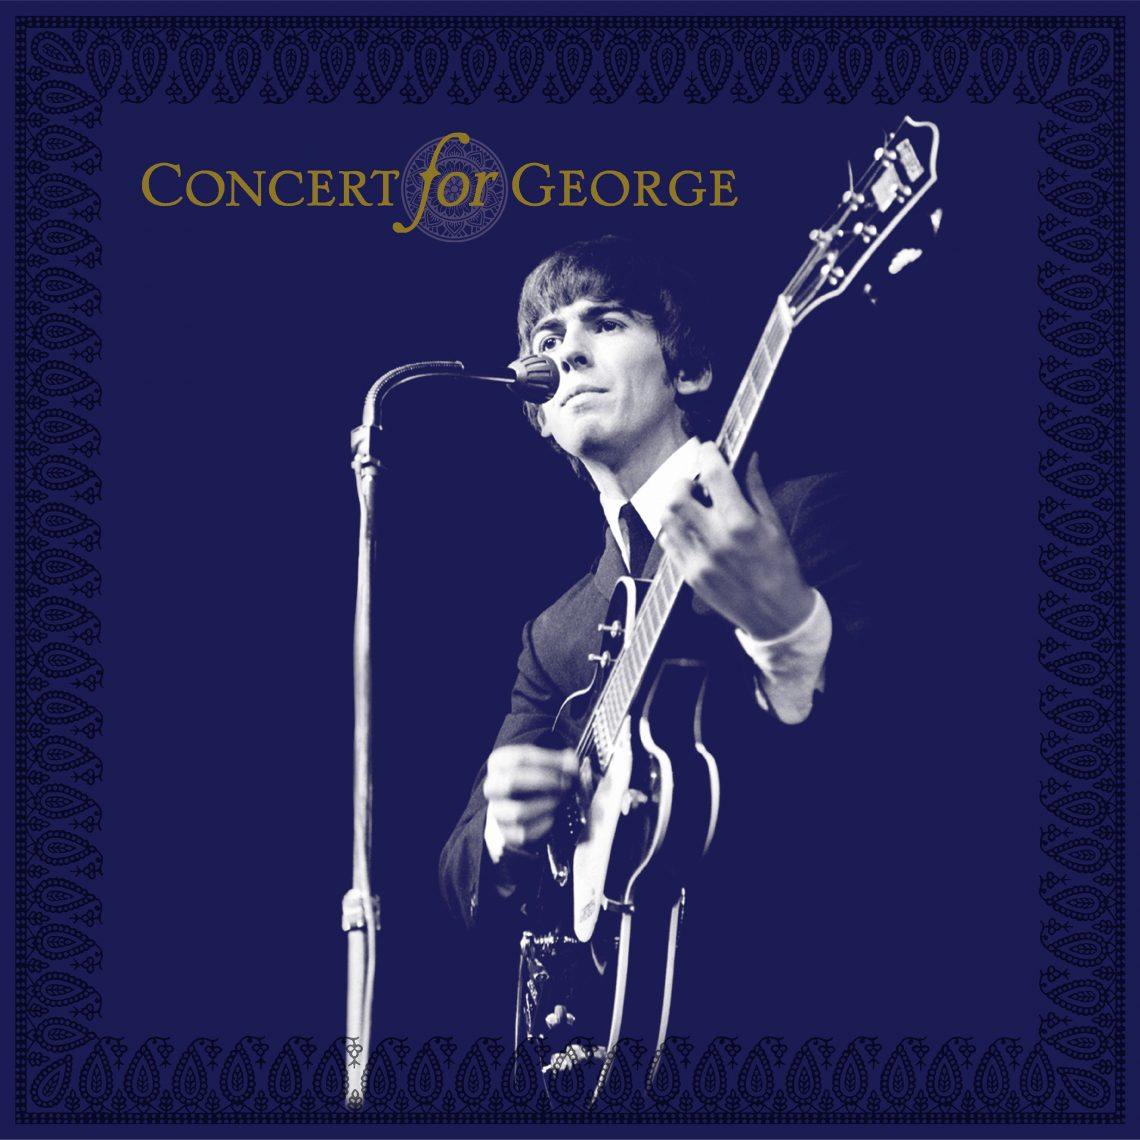 CELEBRATE THE LIFE AND MUSIC OF GEORGE HARRISON, WITH A SPECIAL REISSUE OF CONCERT FOR GEORGE